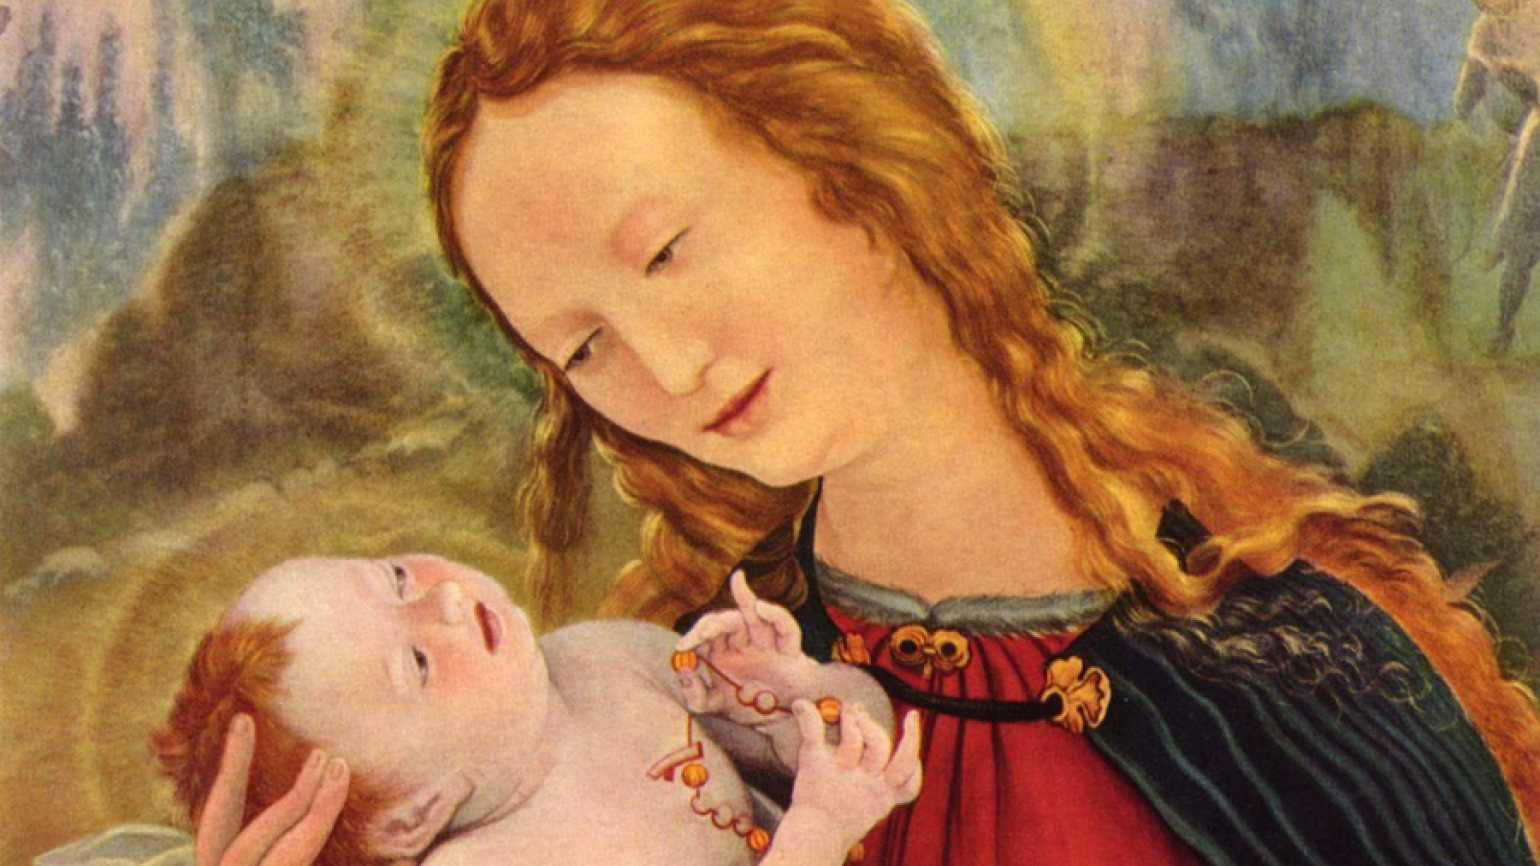 Guideposts: An artist's rendering of the Virgin Mary hold the Baby Jesus in her arms lovingly